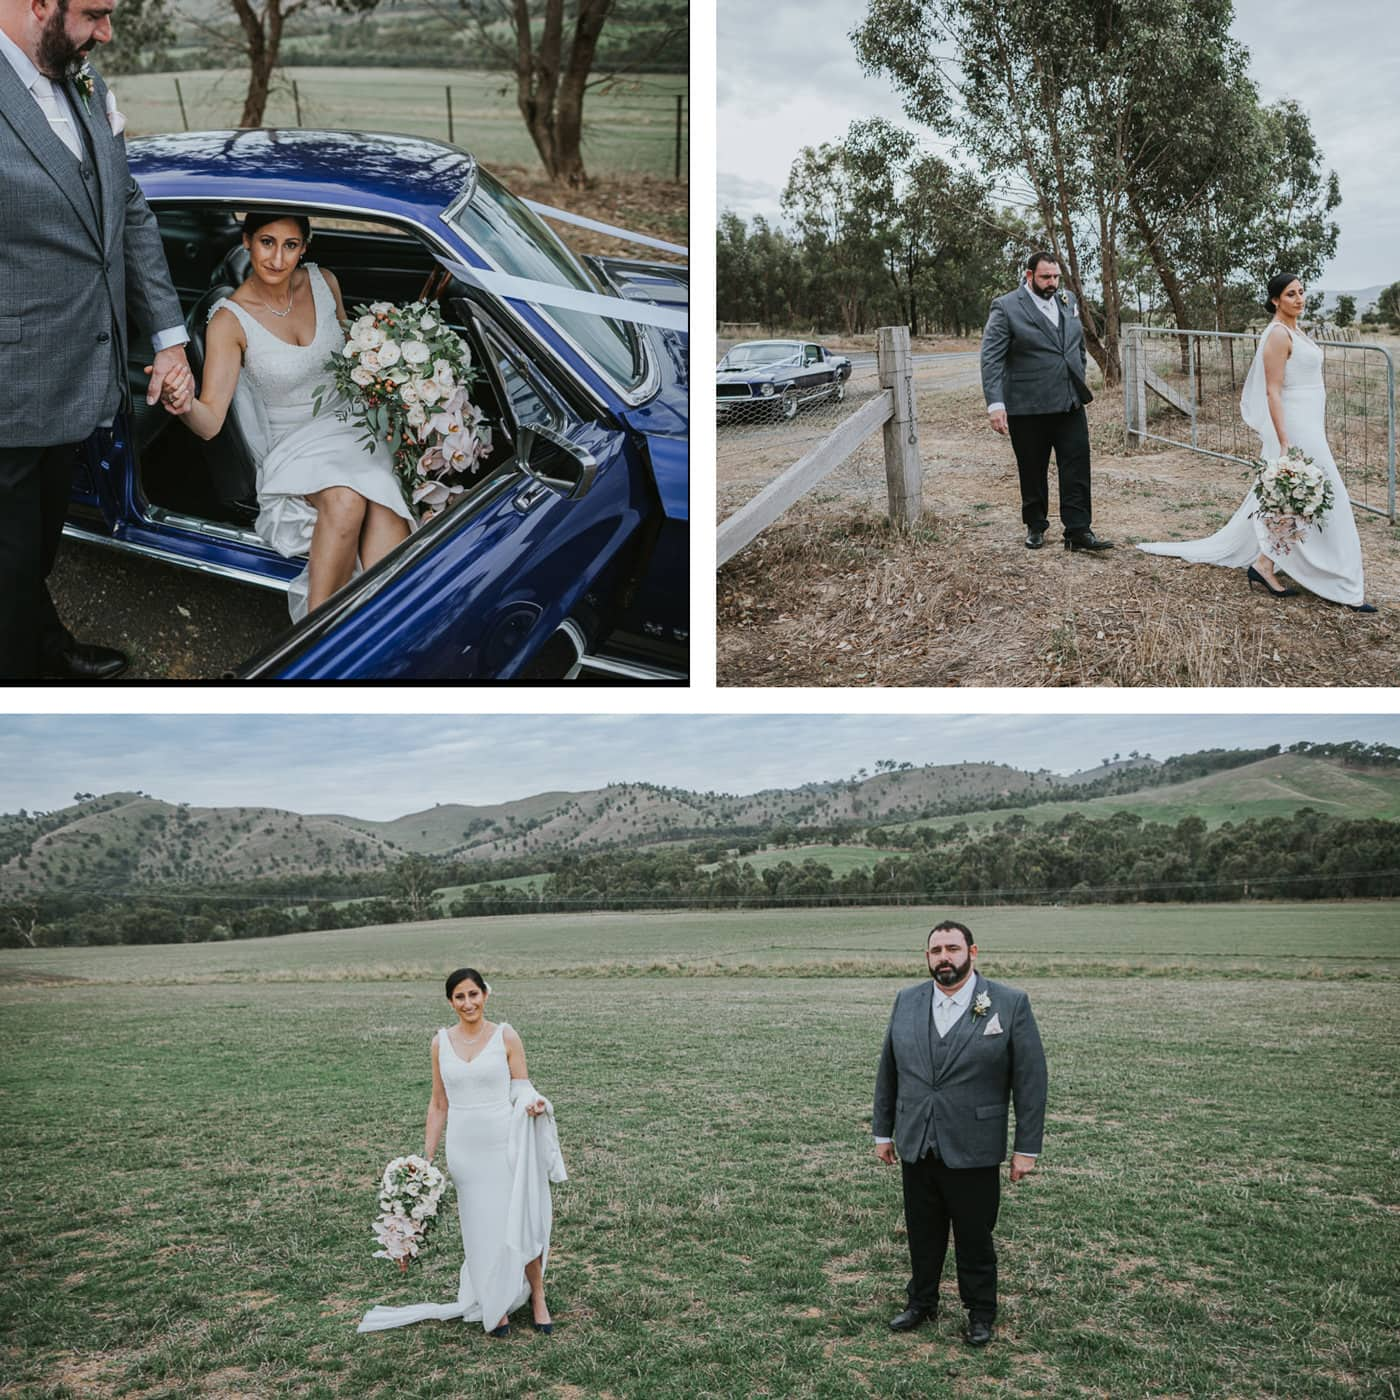 Bride and groom venture out in Ford Mustang to get to location phootshoot above the hills at Flowerdale Estate